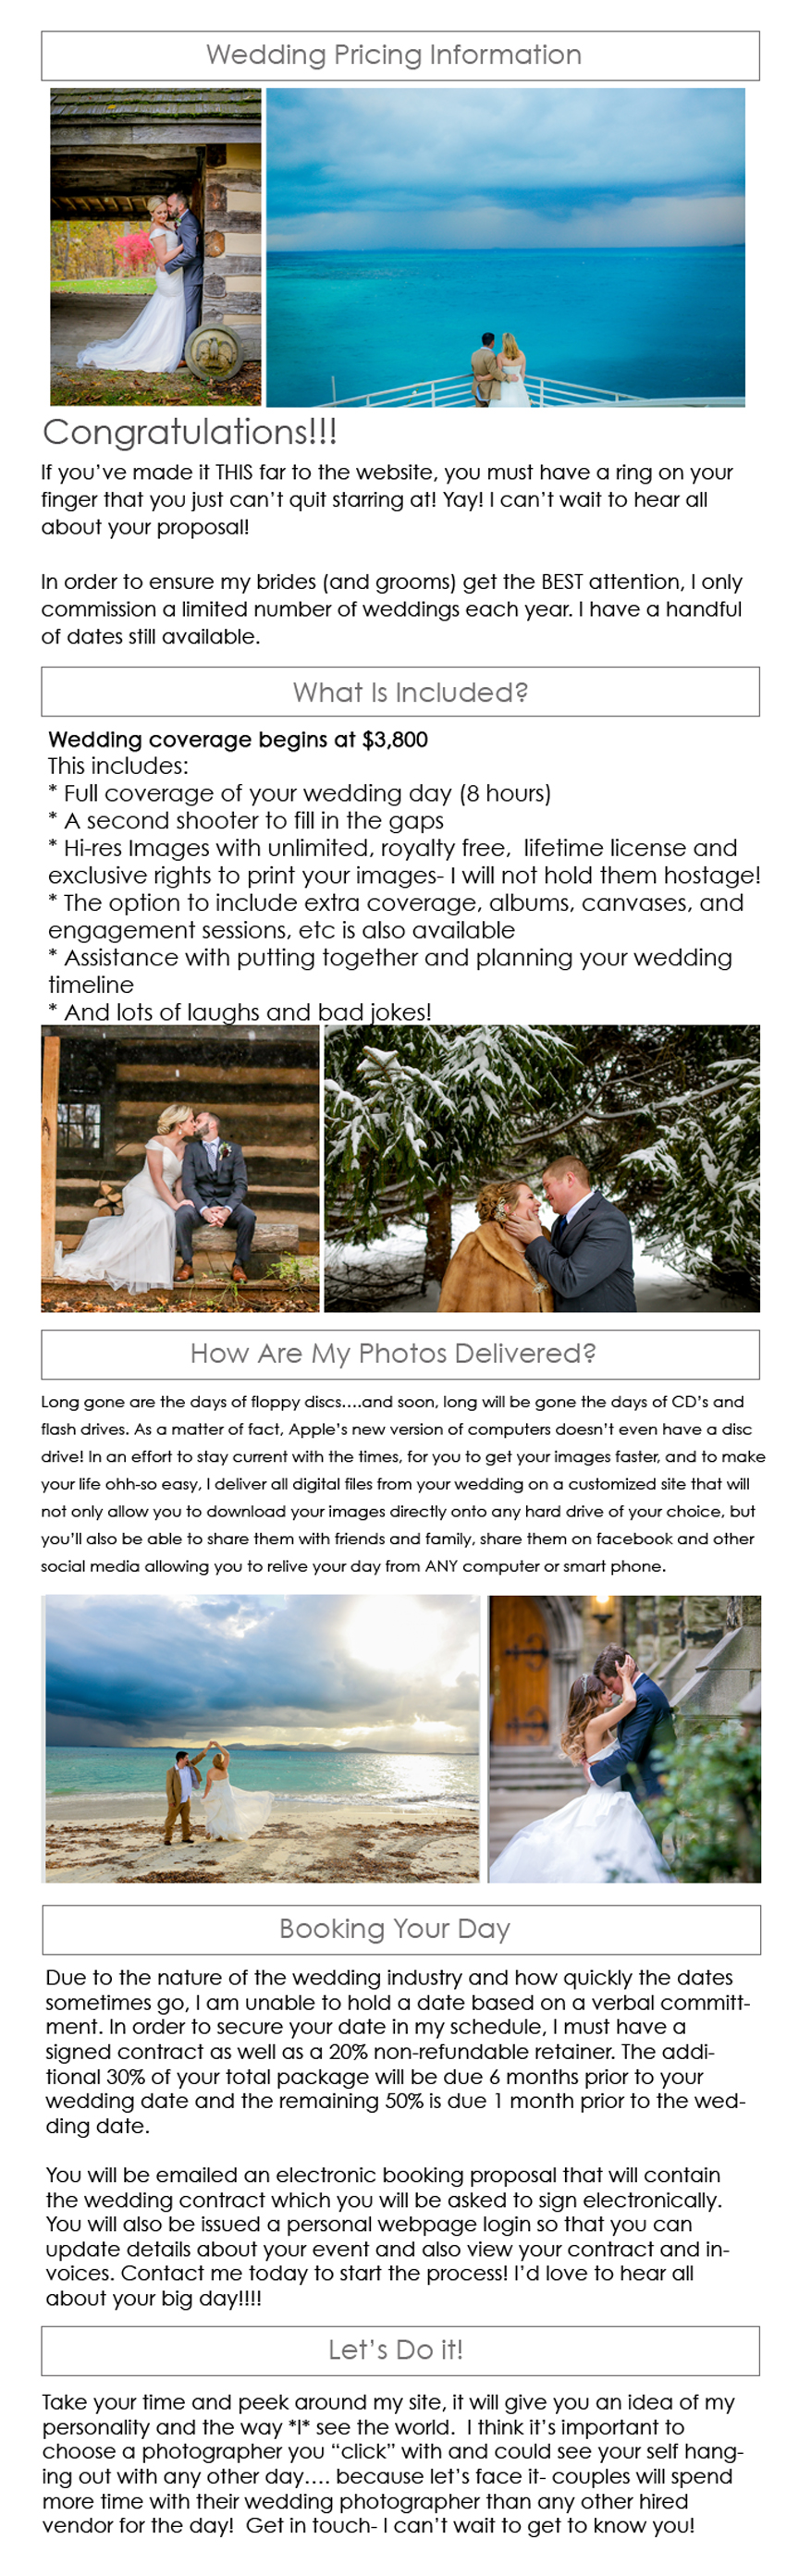 wedding-pricing-page3-3800